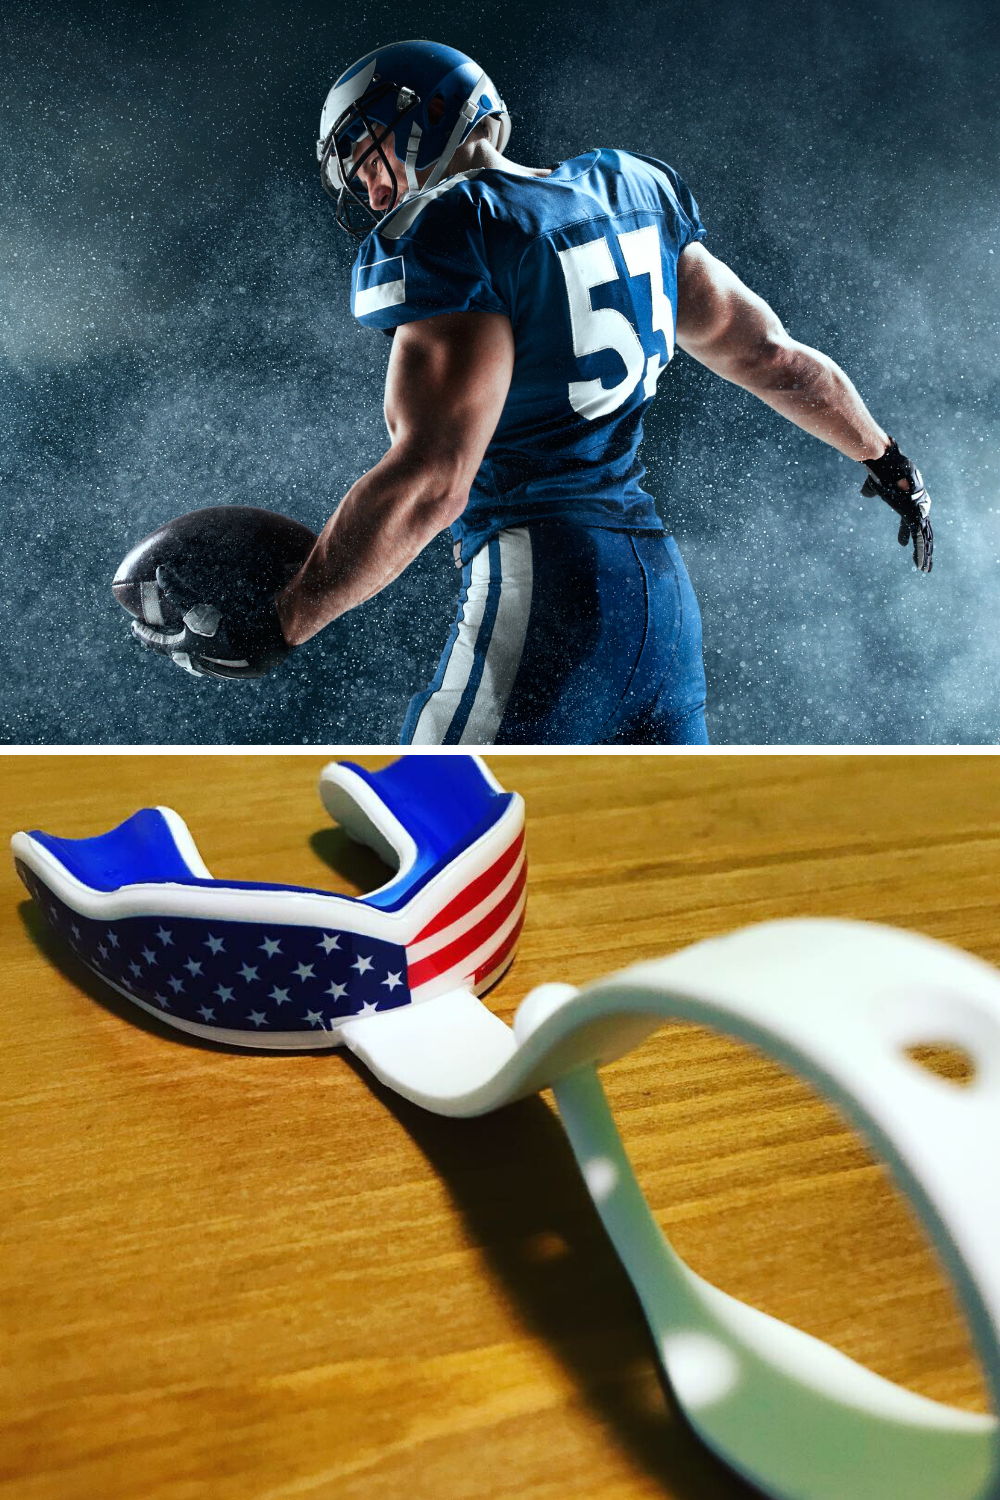 Strapped Sports Mouth Guard Football Ice Hockey Lacrosse 6 Best Colors Vampire Fangs Usa Flag Oral Mart Sports Mouth Guards In 2020 Mouth Guard Sports Mouth Guard American Flag Football